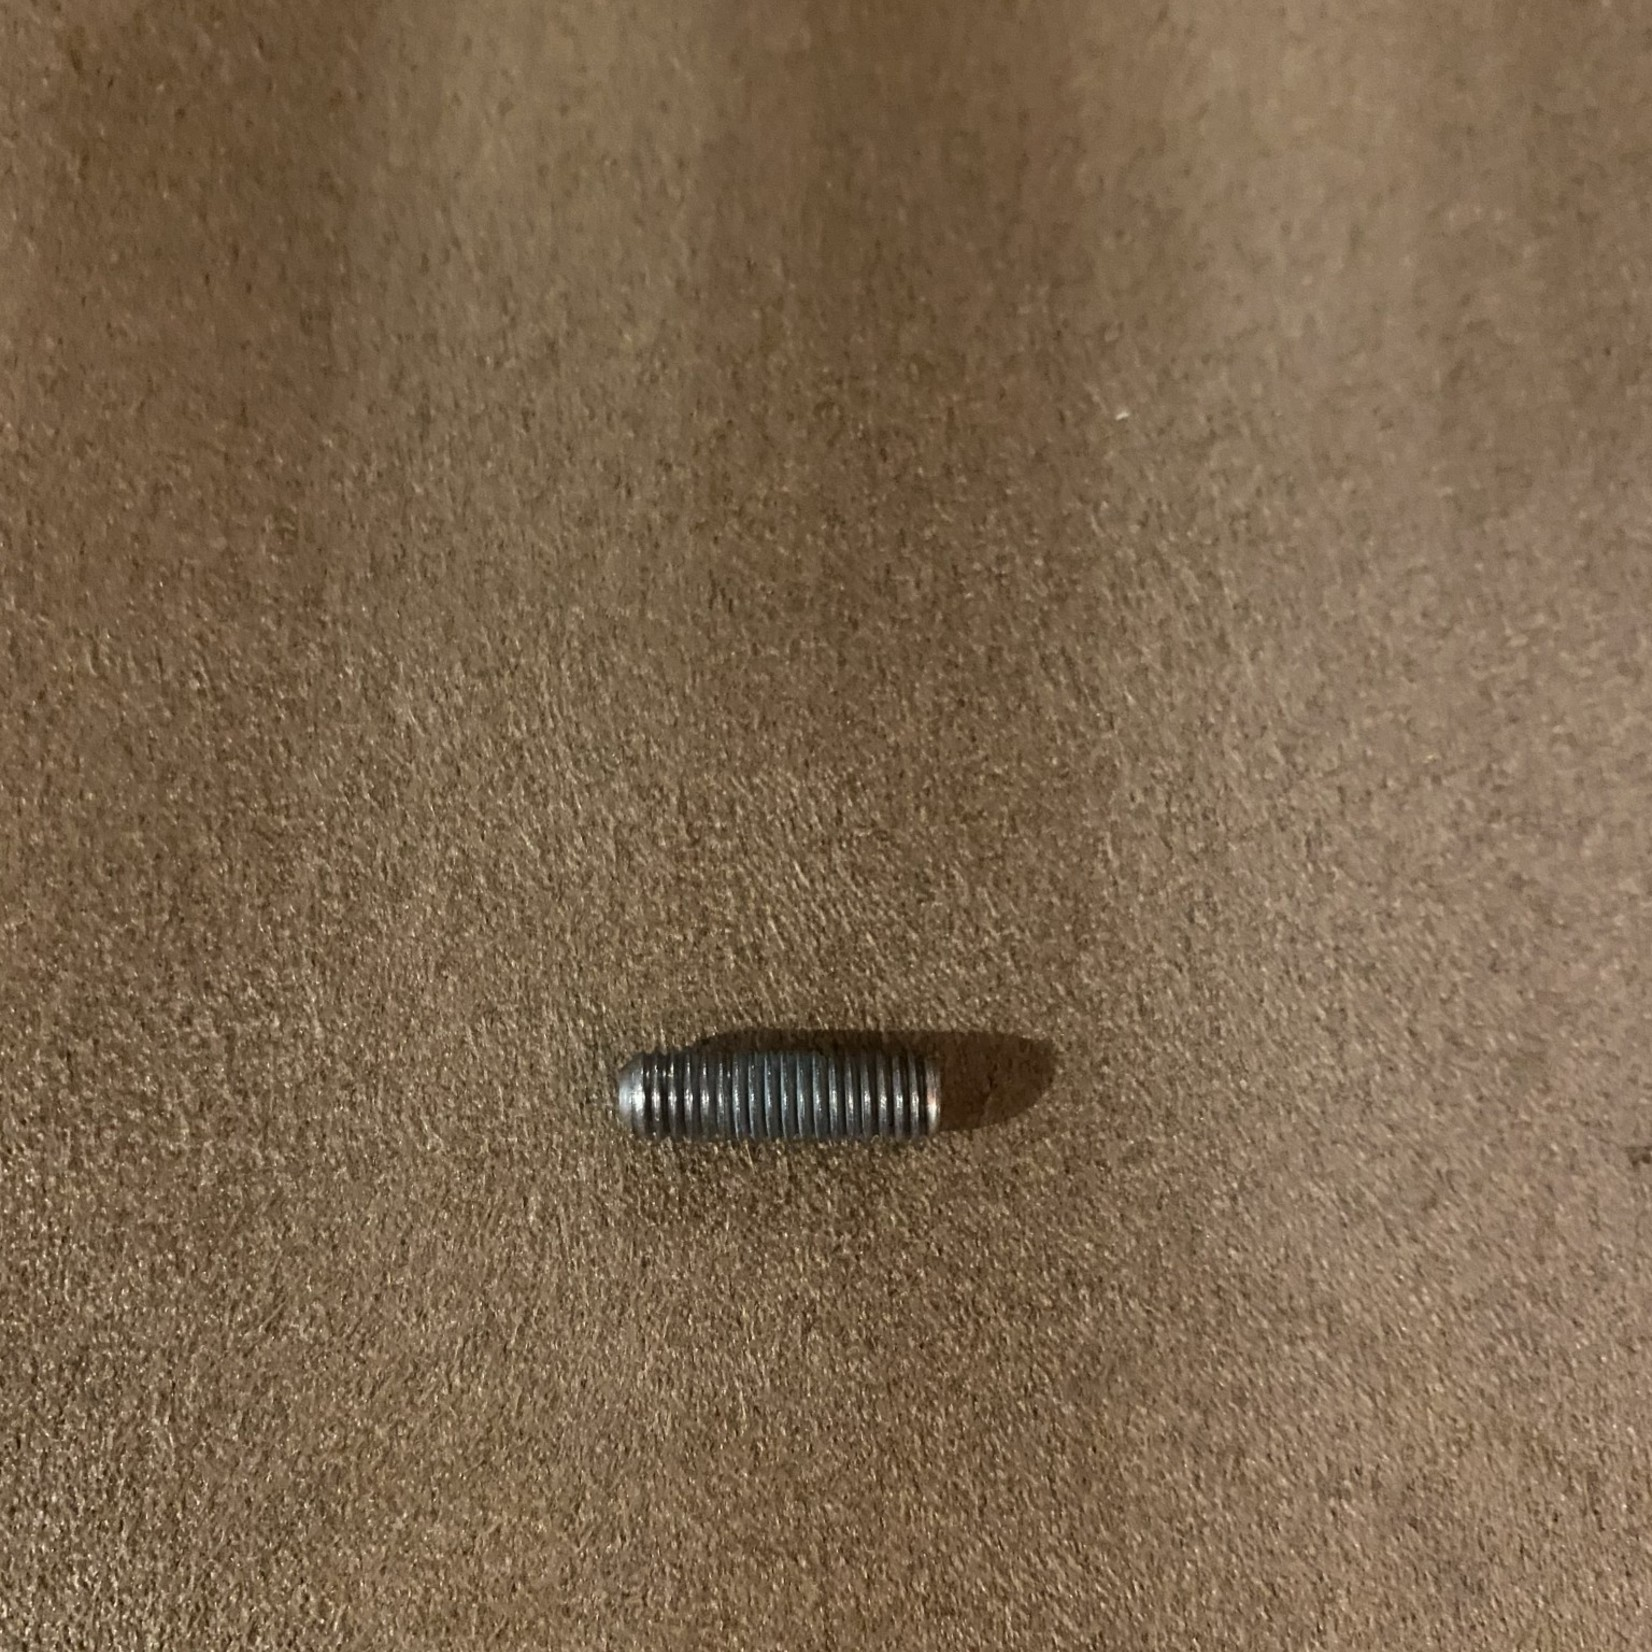 Assorted Grub Screws Bulk